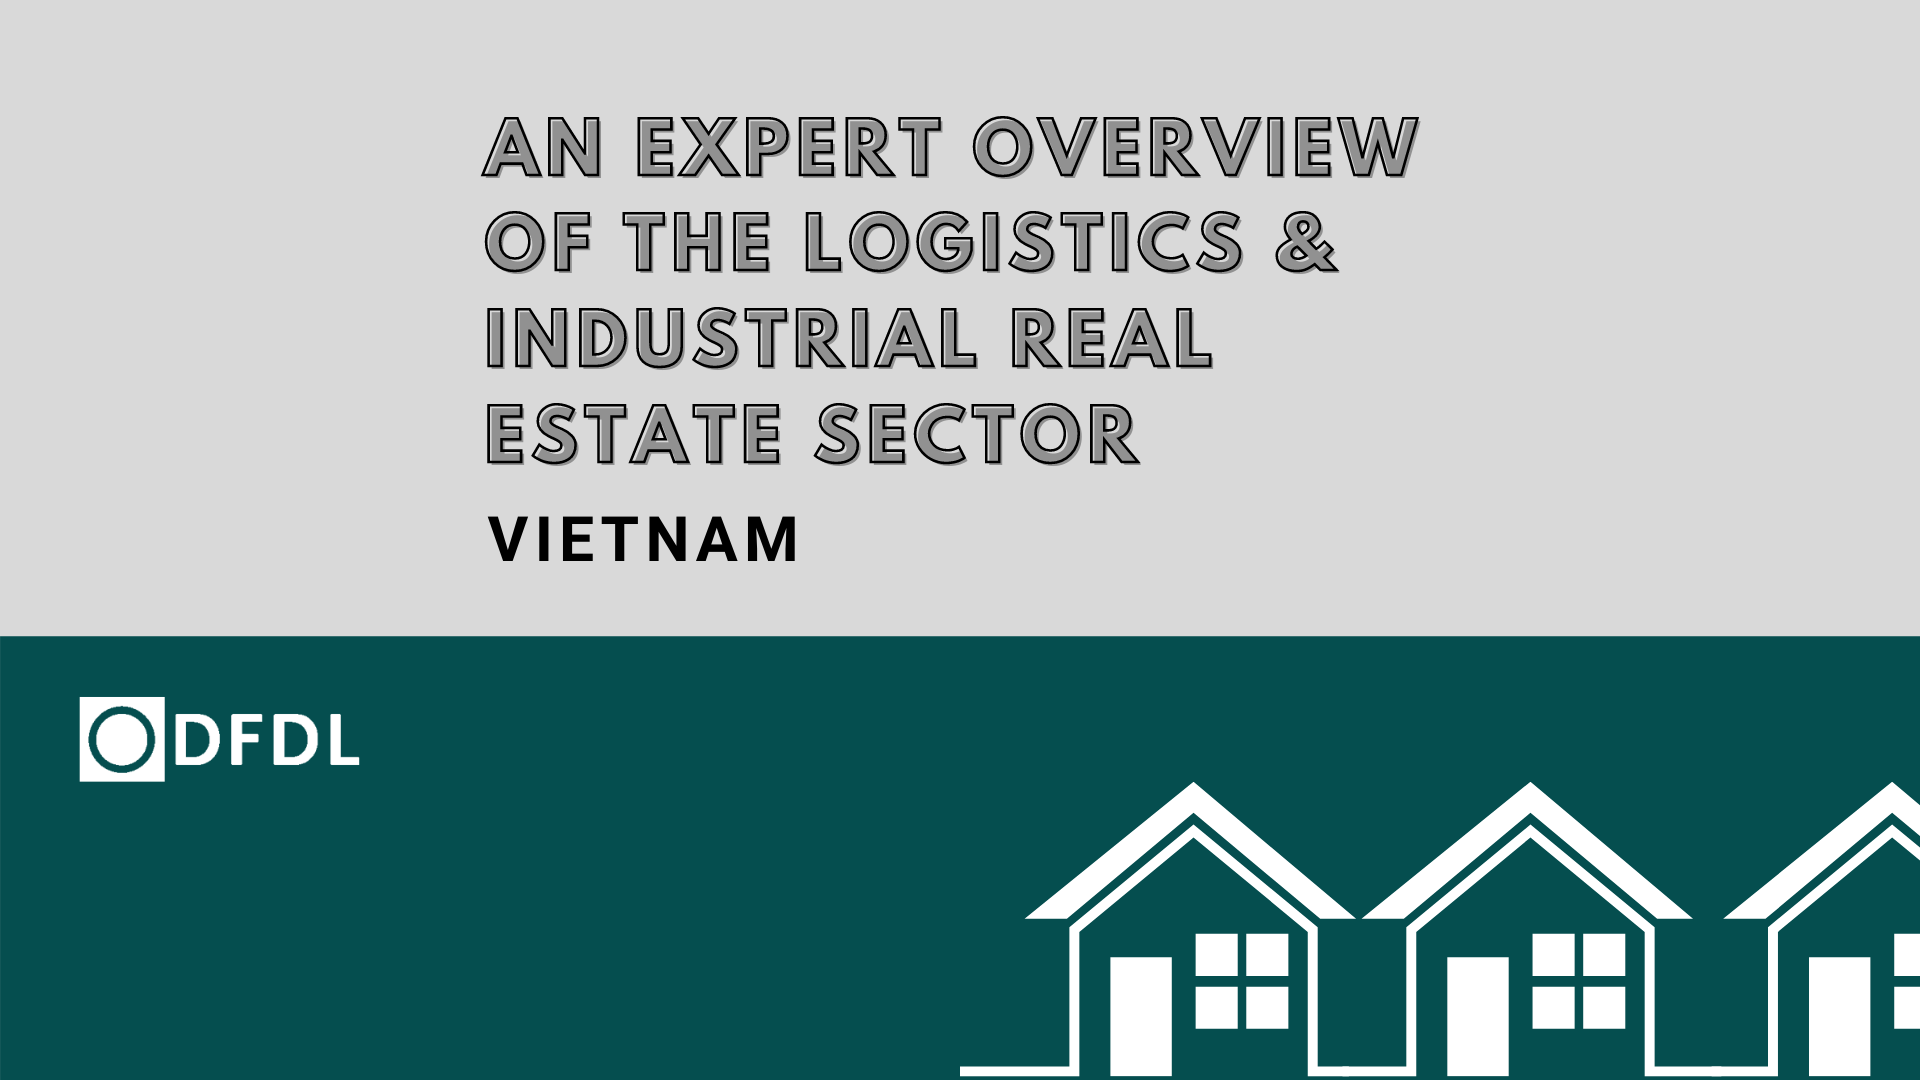 An Expert Overview of the Logistics and Industrial Real Estate Sector in Vietnam